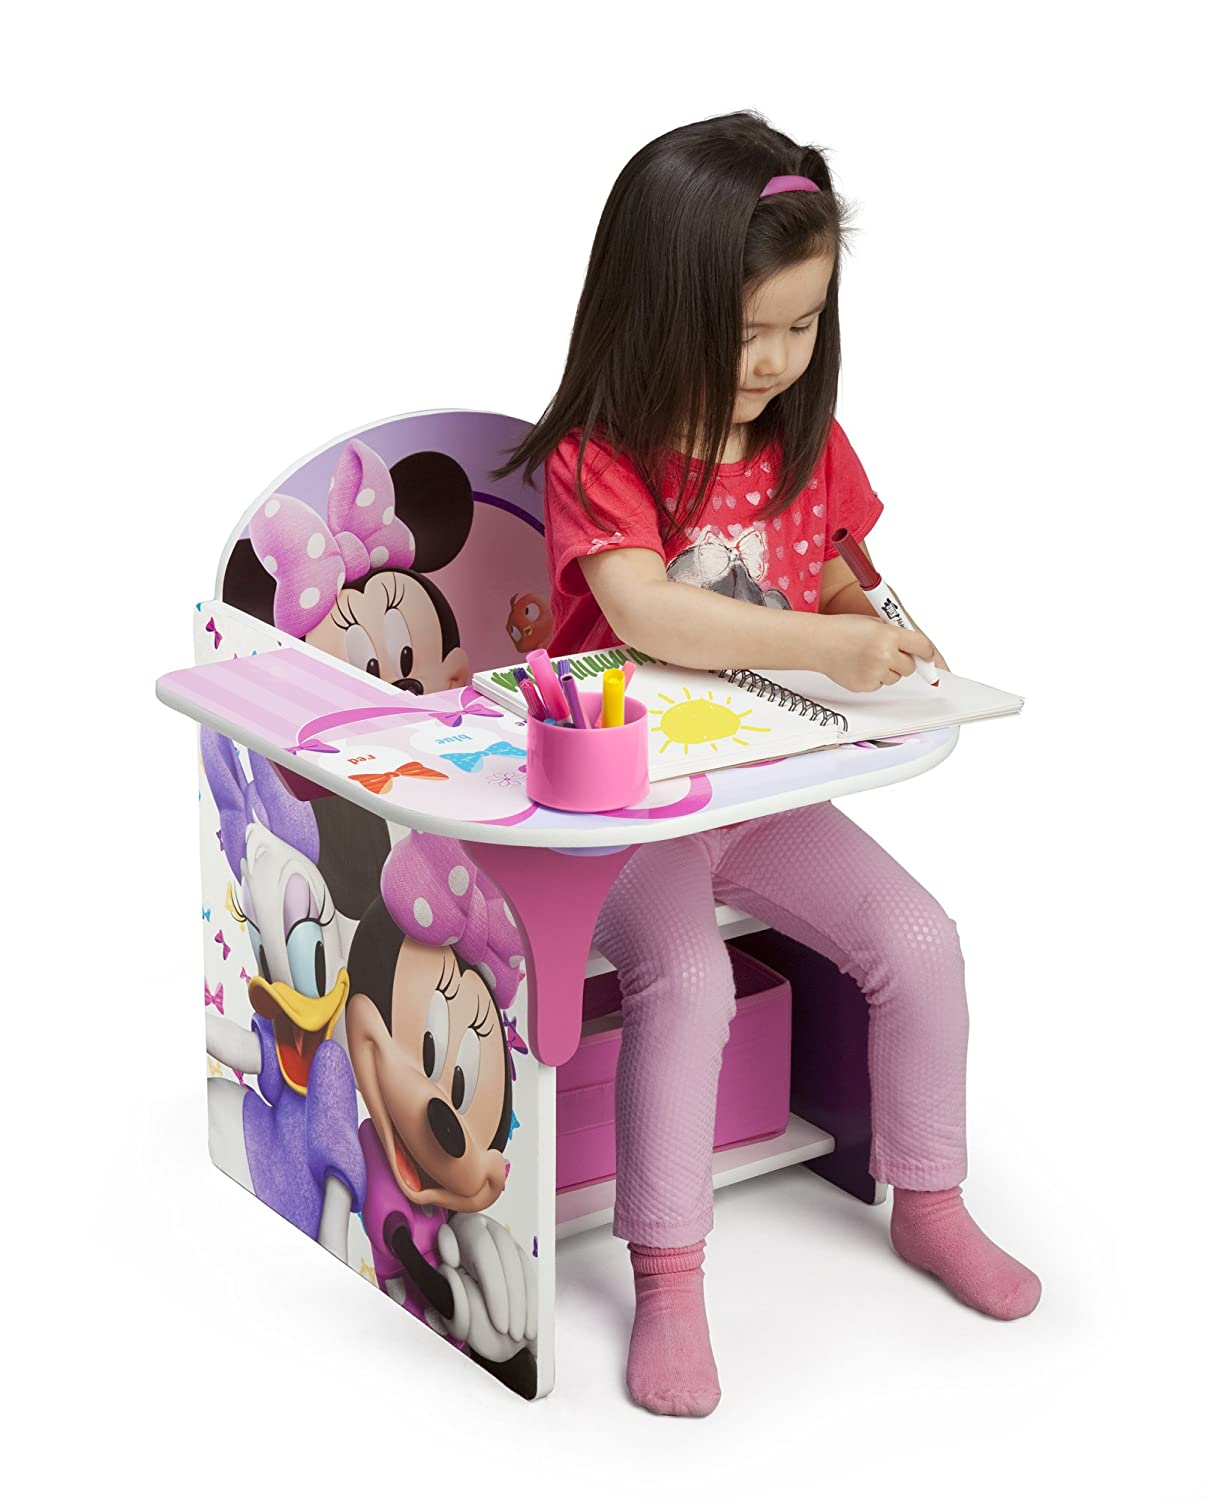 Delicieux Amazon.com: Delta Children Chair Desk With Storage Bin, Disney Minnie  Mouse: Baby